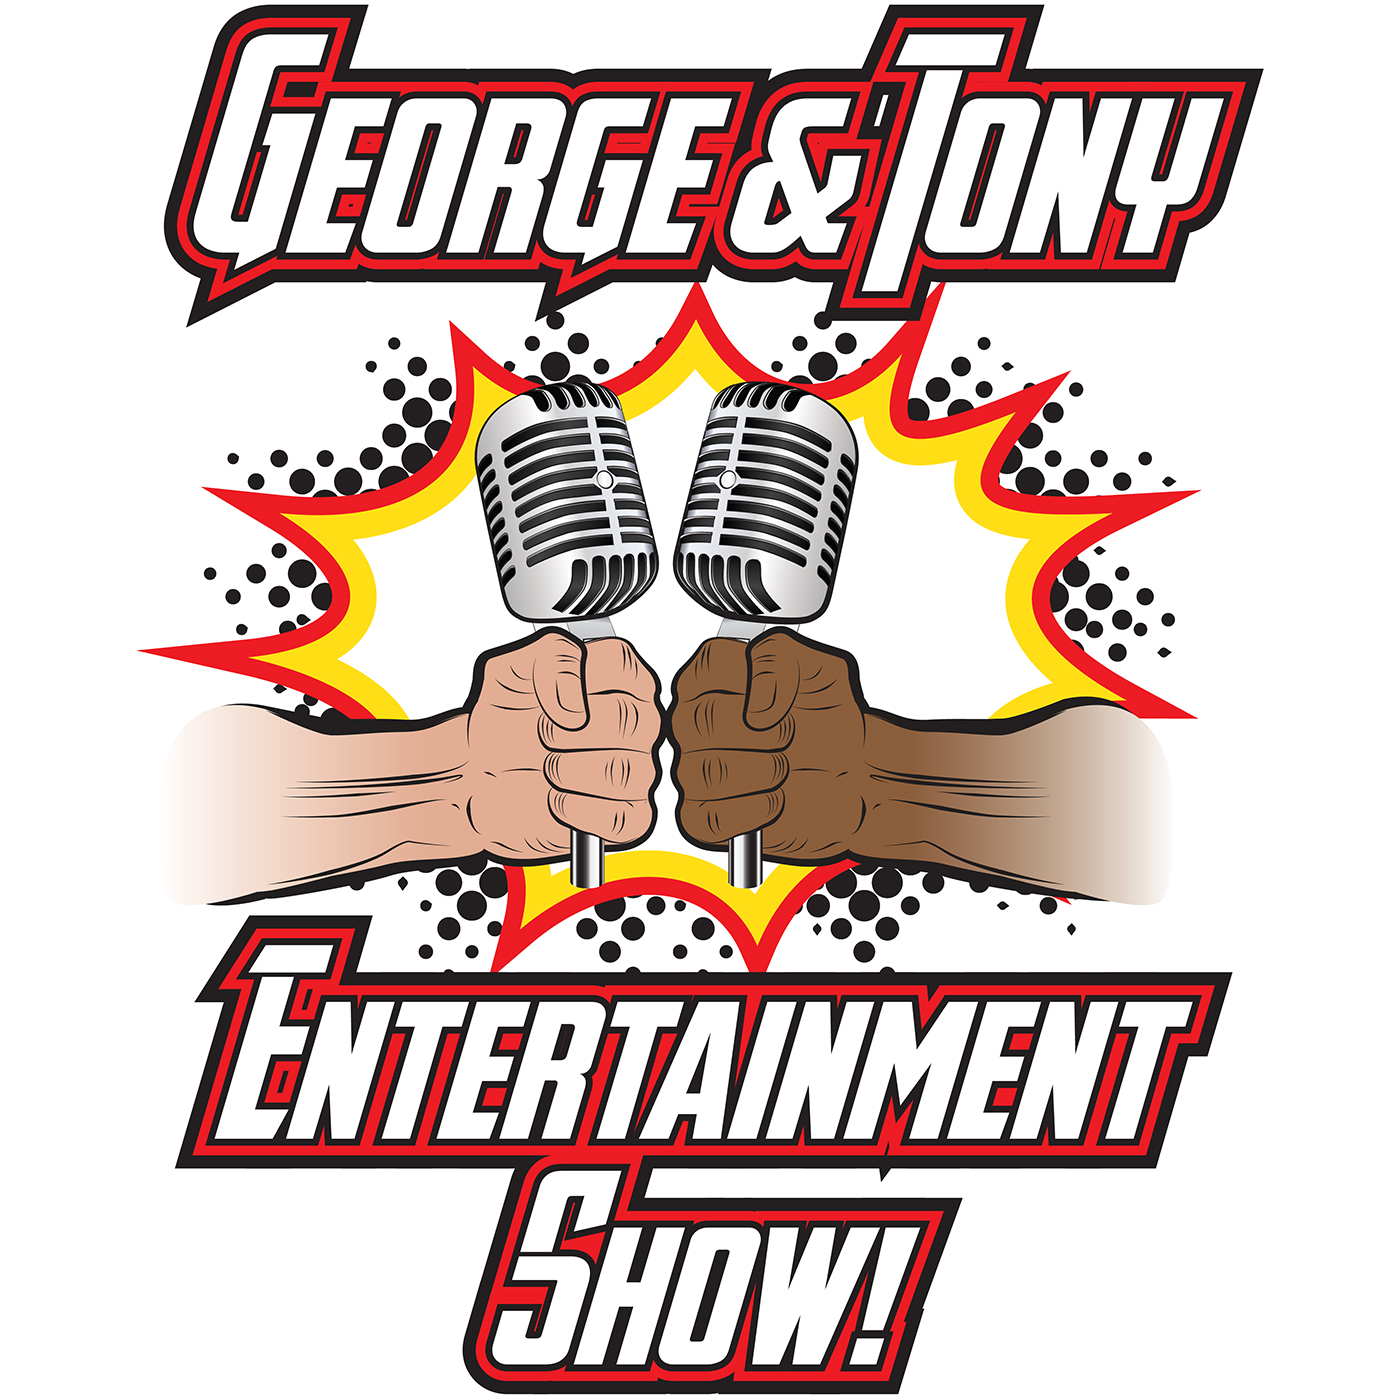 George and Tony Entertainment Show #47